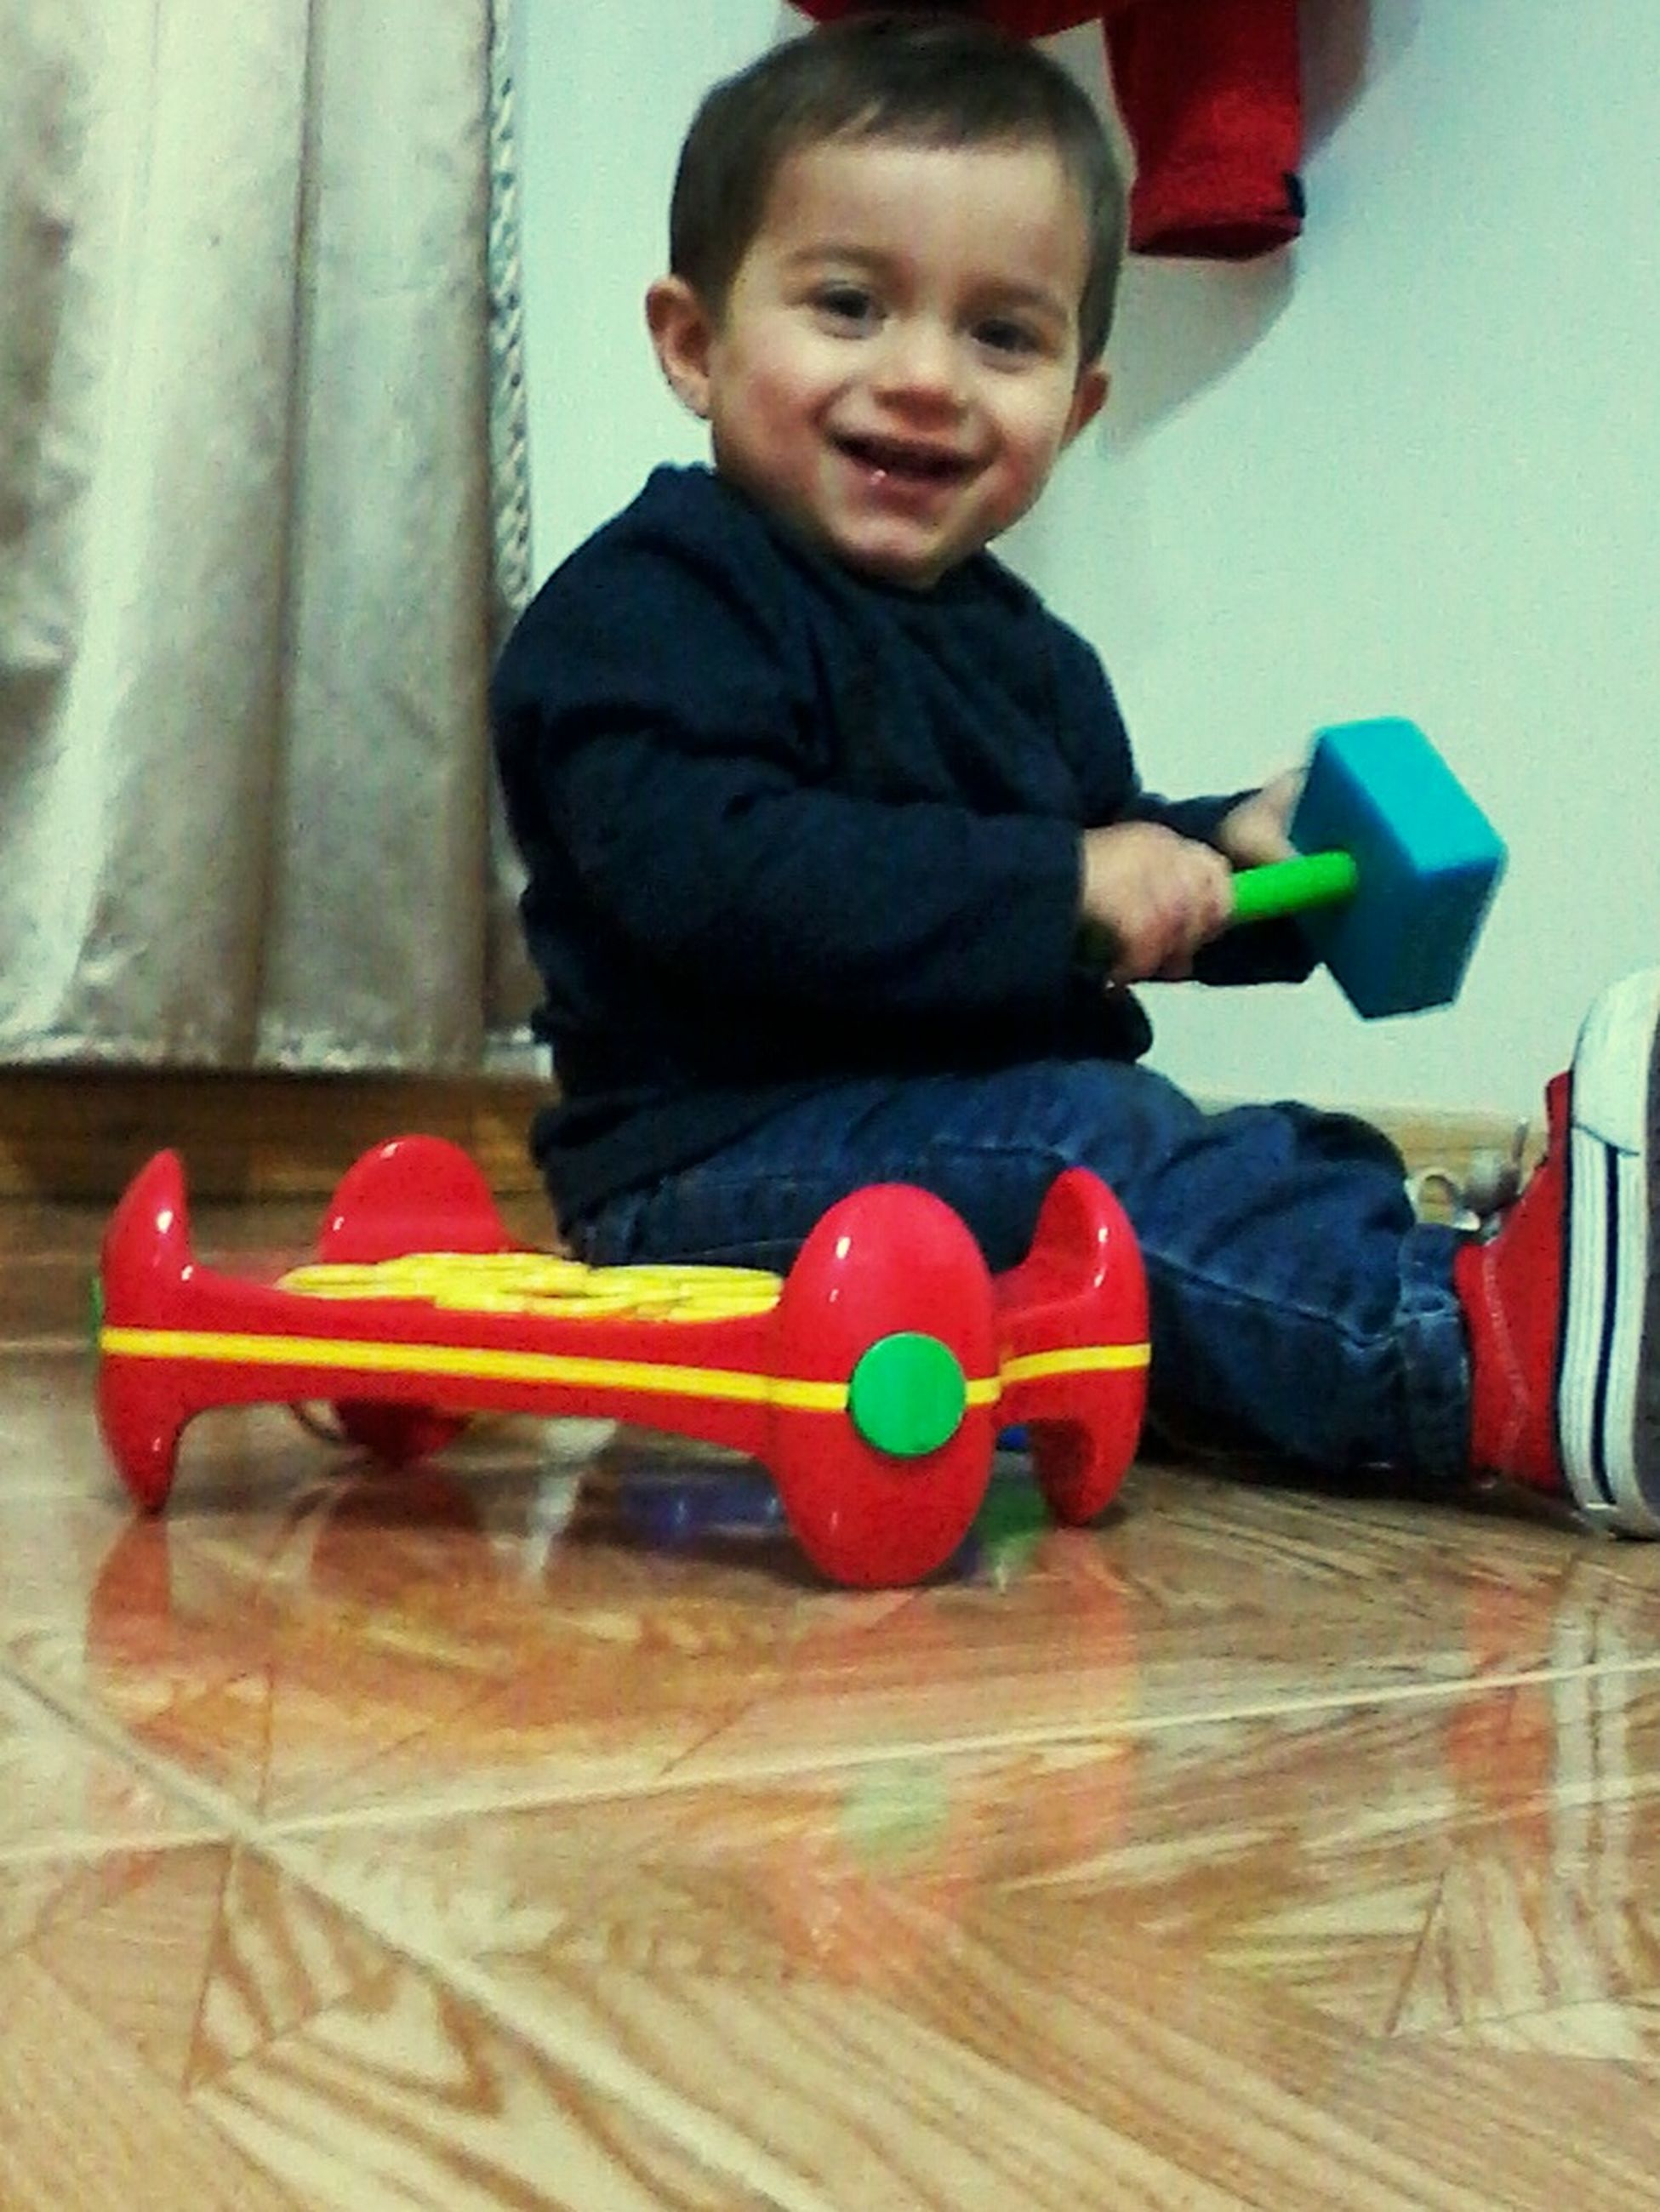 indoors, person, childhood, casual clothing, lifestyles, front view, looking at camera, sitting, portrait, leisure activity, elementary age, home interior, boys, cute, full length, table, innocence, holding